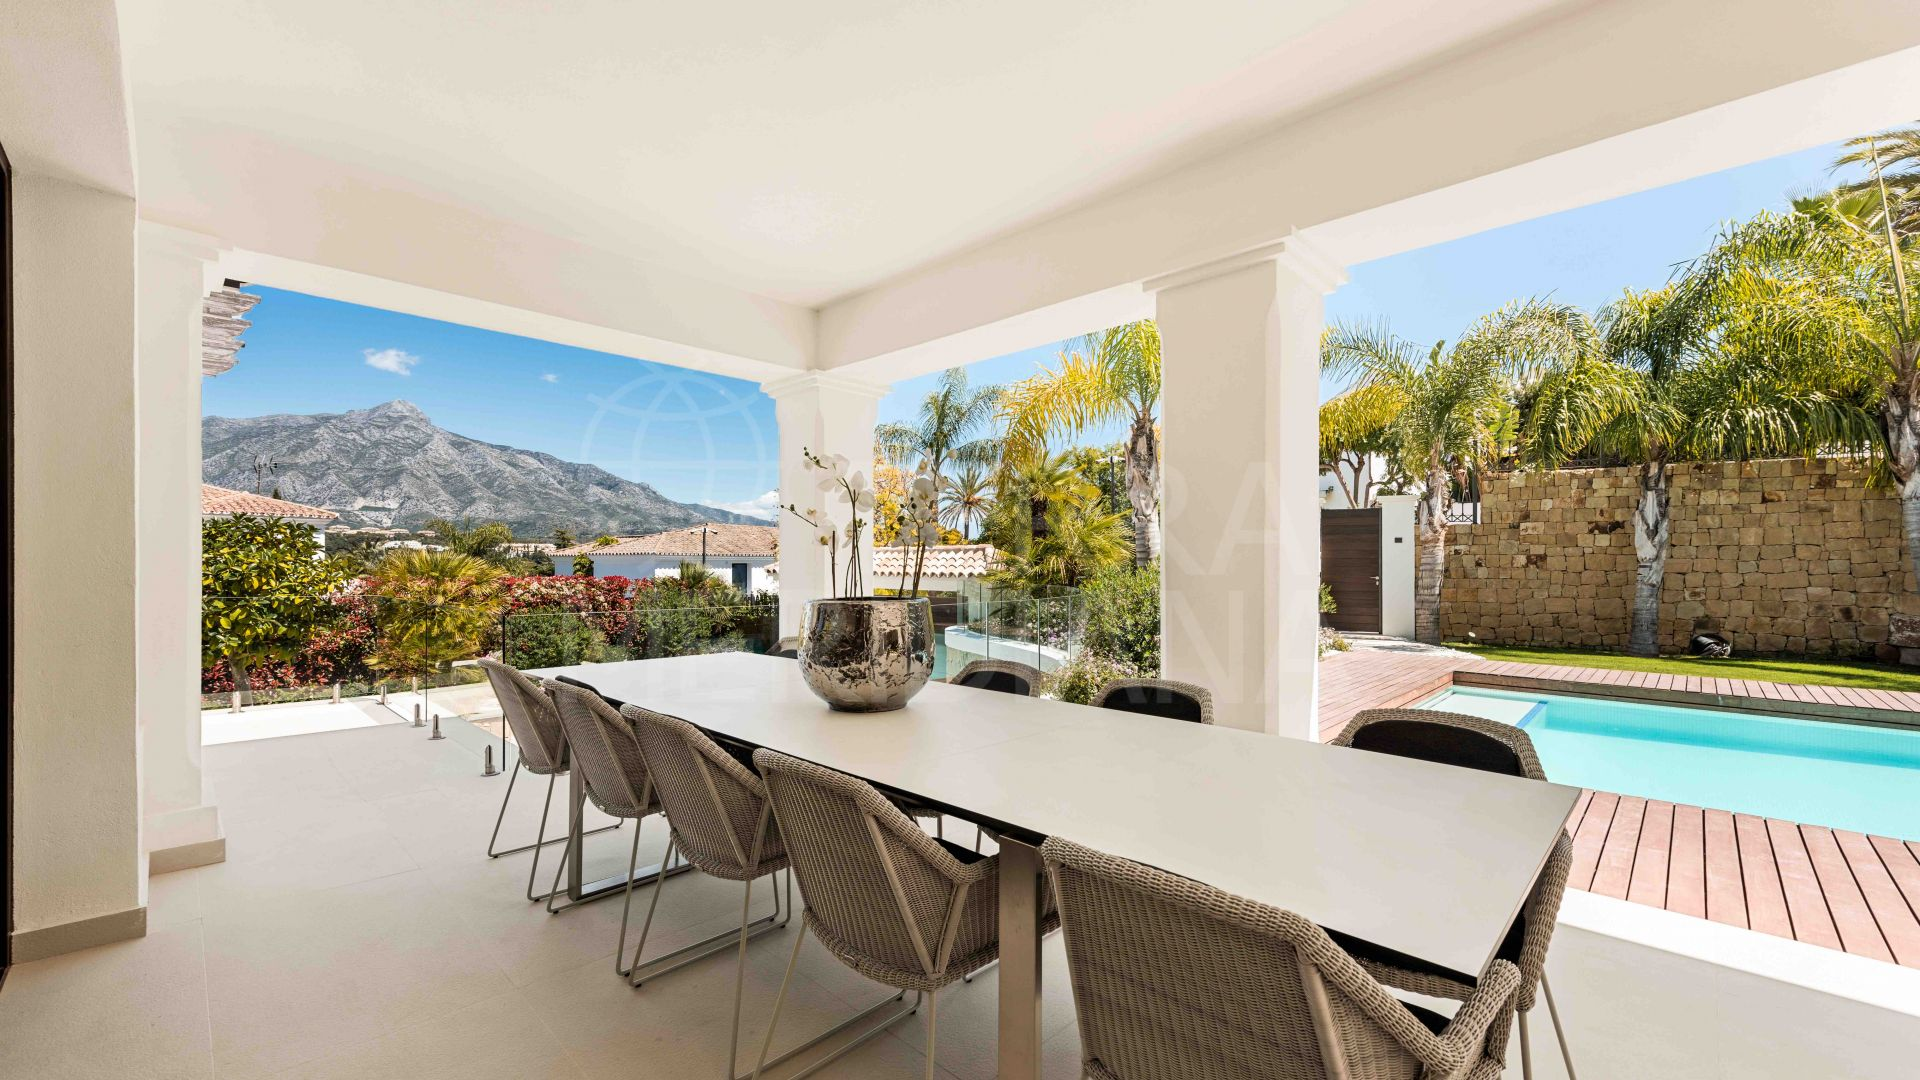 Timeless contemporary villa with deluxe spa and scenic mountain views for sale in Las Brisas, Nueva Andalucia, Marbella